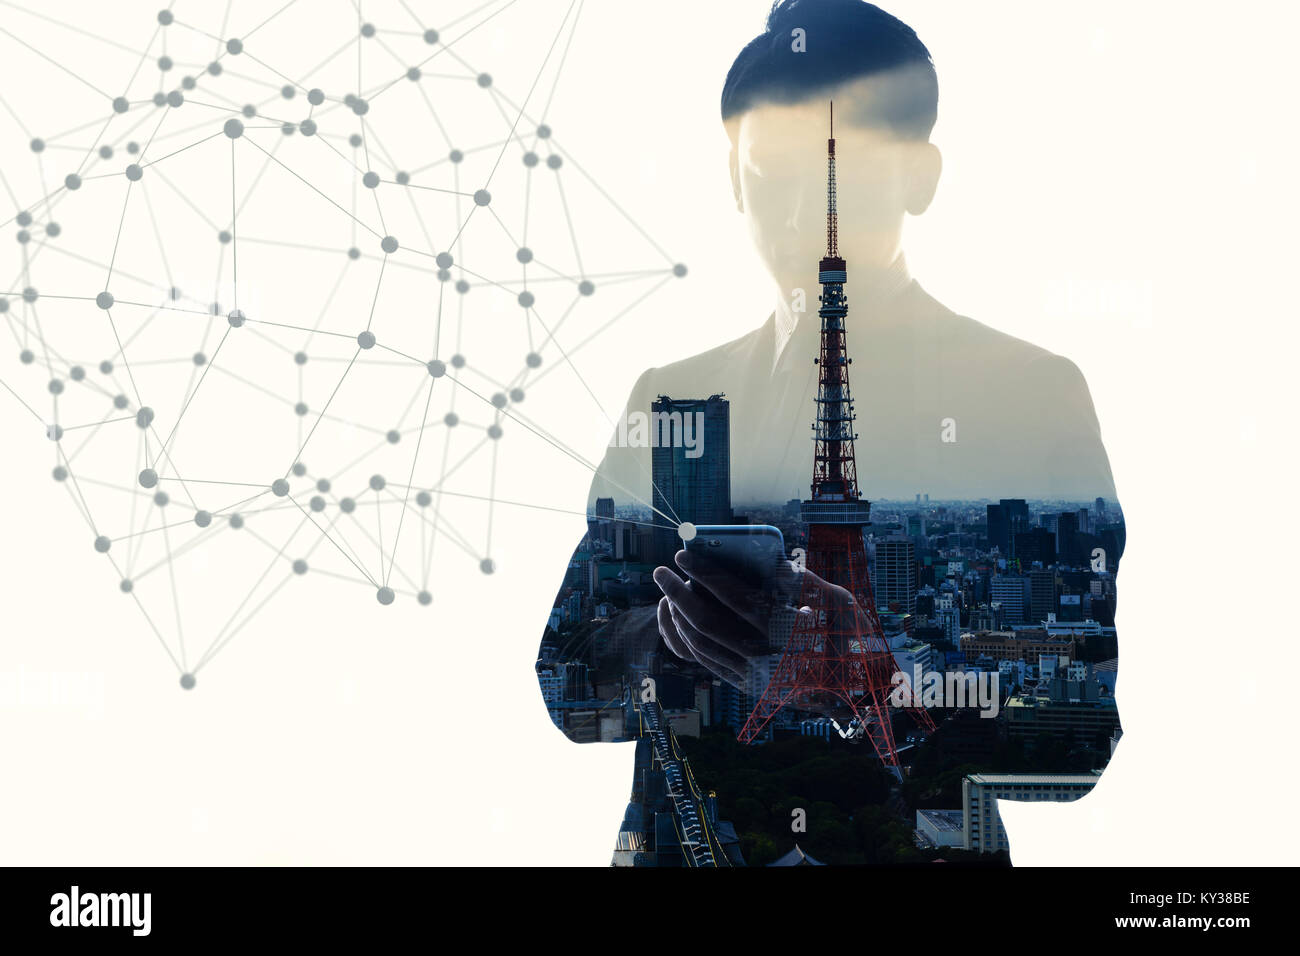 Mobile communication network concept. Abstract double exposure. - Stock Image